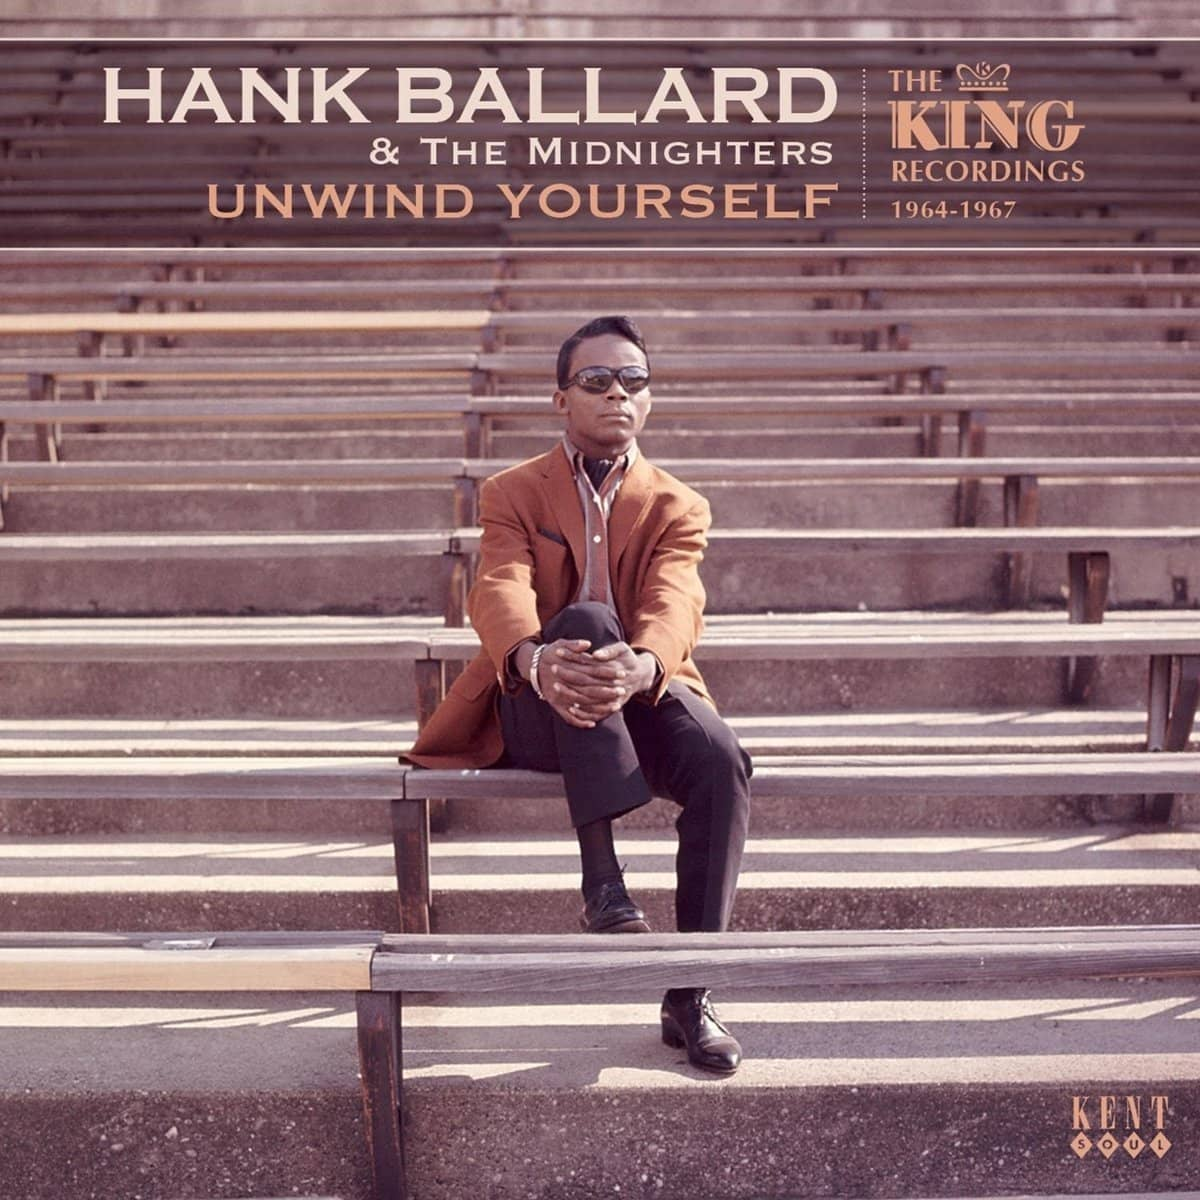 hank ballard & the midnighters cd: unwind yourself: the king